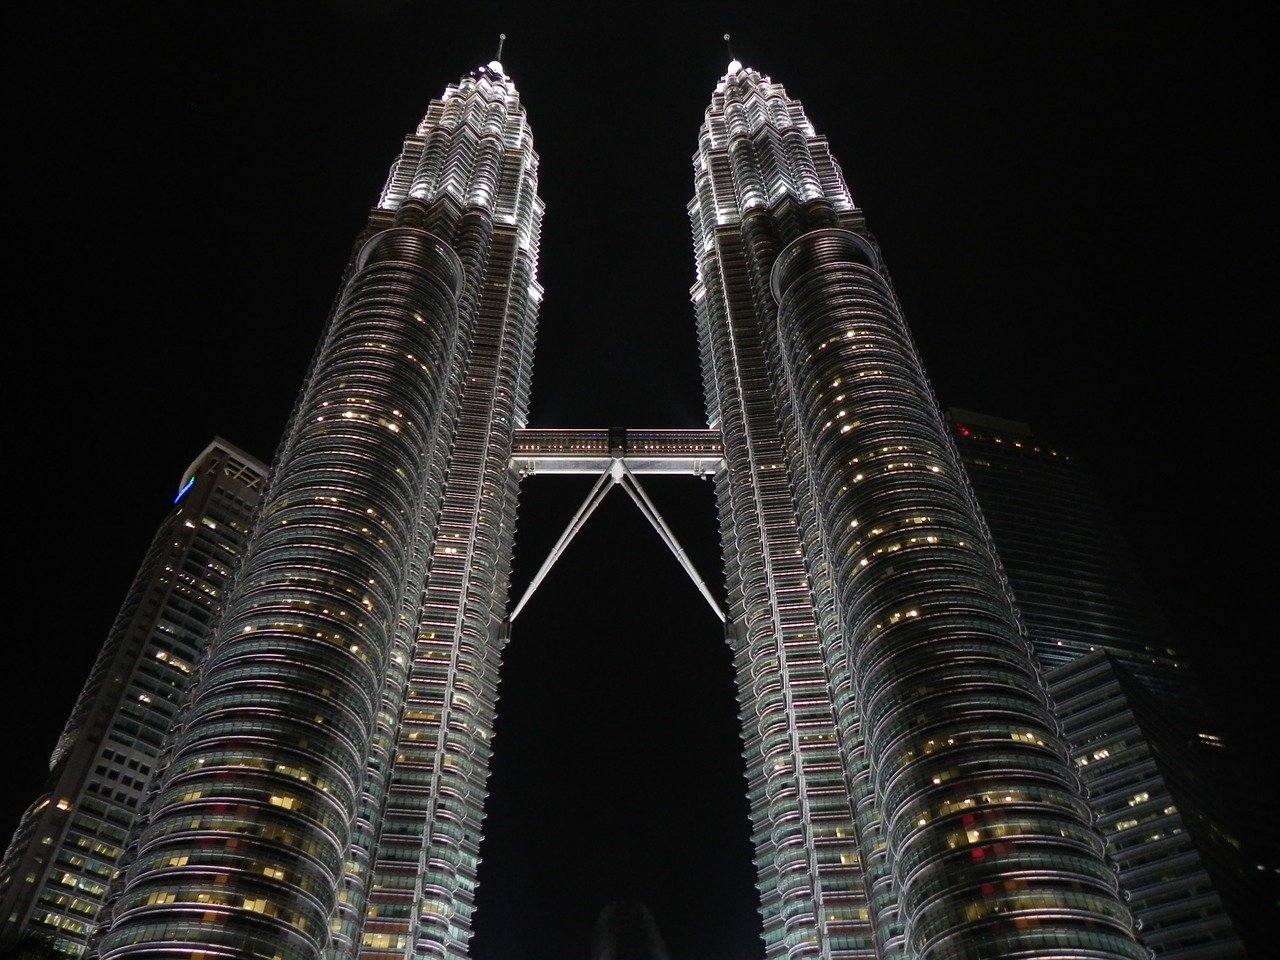 Malaysia and it's many wonders